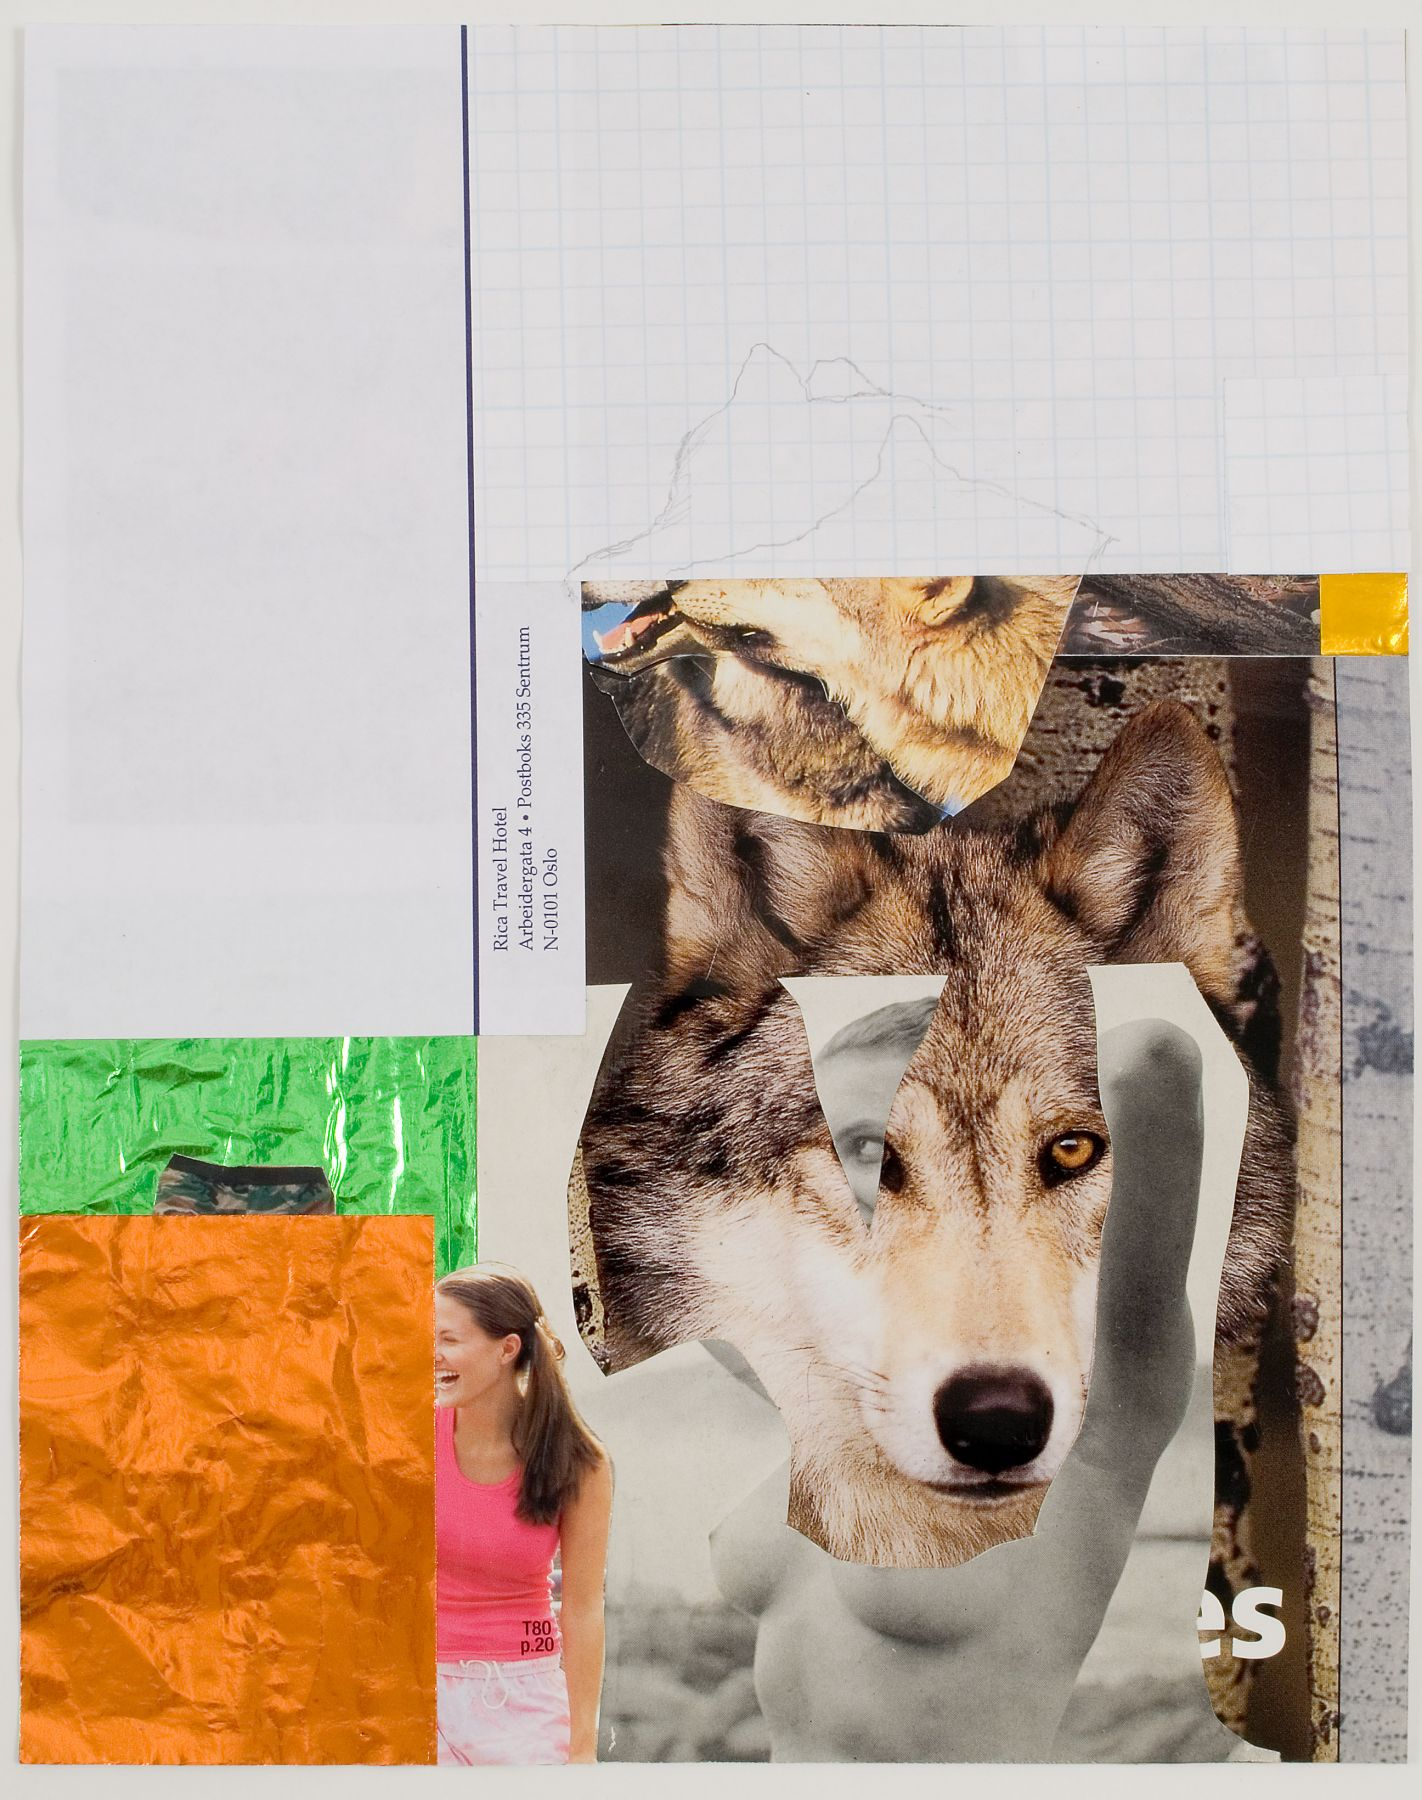 Jim Drain, Untitled, 2007, mixed media on paper, 11 x 8 1/2 inches